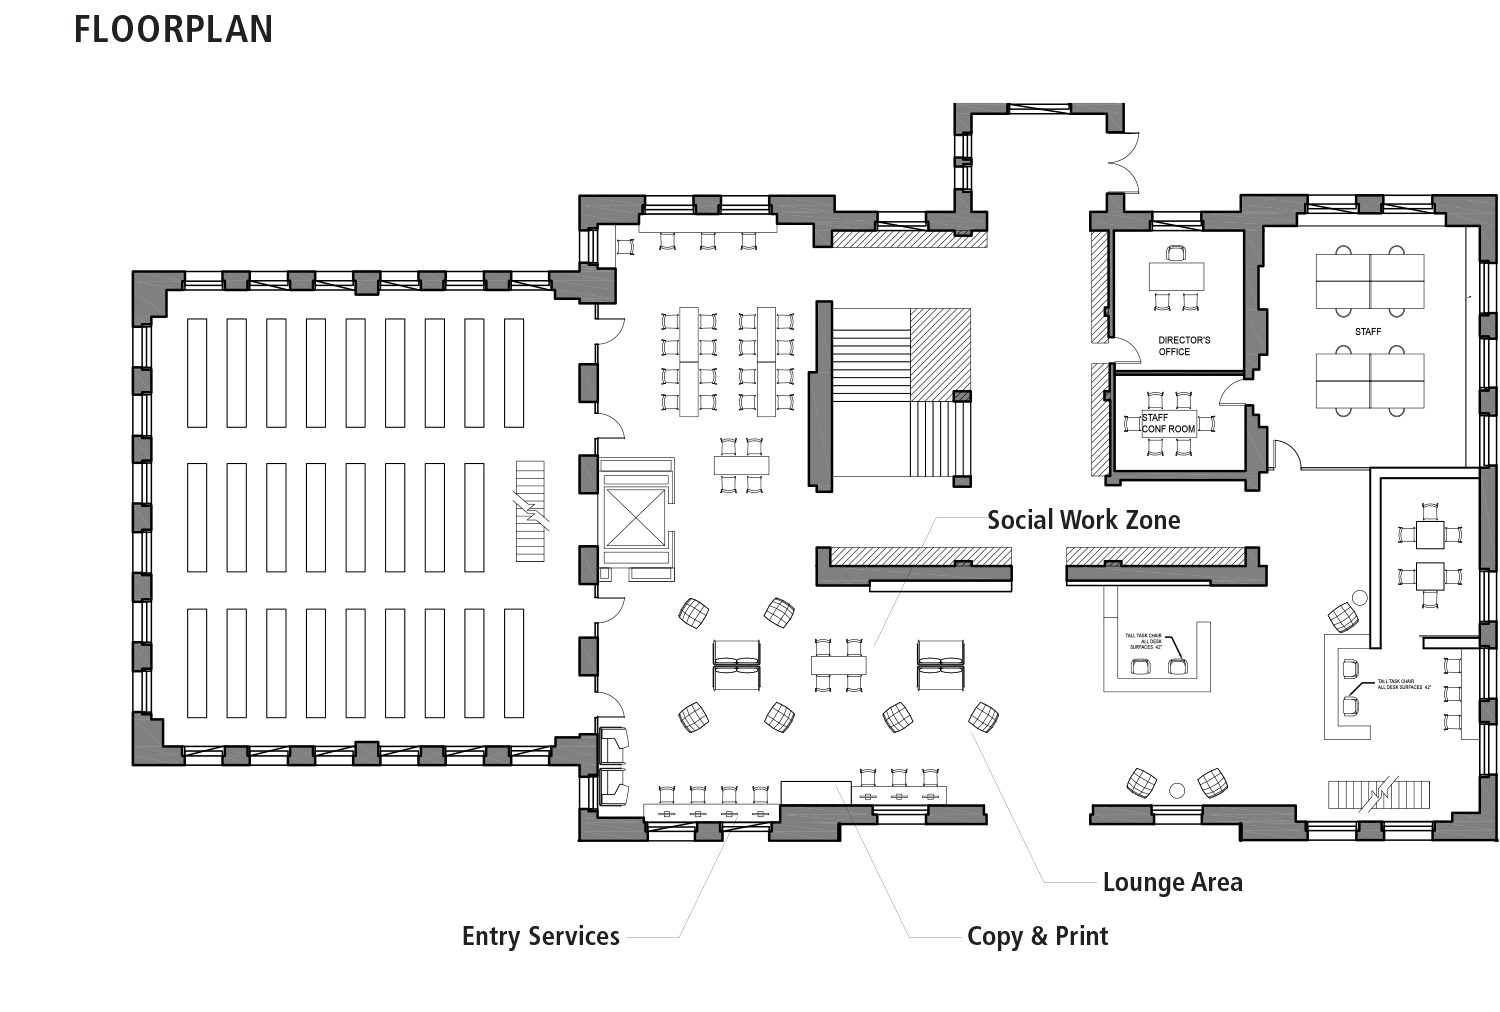 We relocated the most utilized services in the library, such as the copy and print station, to be more easily visible and accessible immediately after entering. Through different material, furniture and color choices, we zoned the first floor into different areas for group and individual study, with the individual work stations placed farther from the entry.